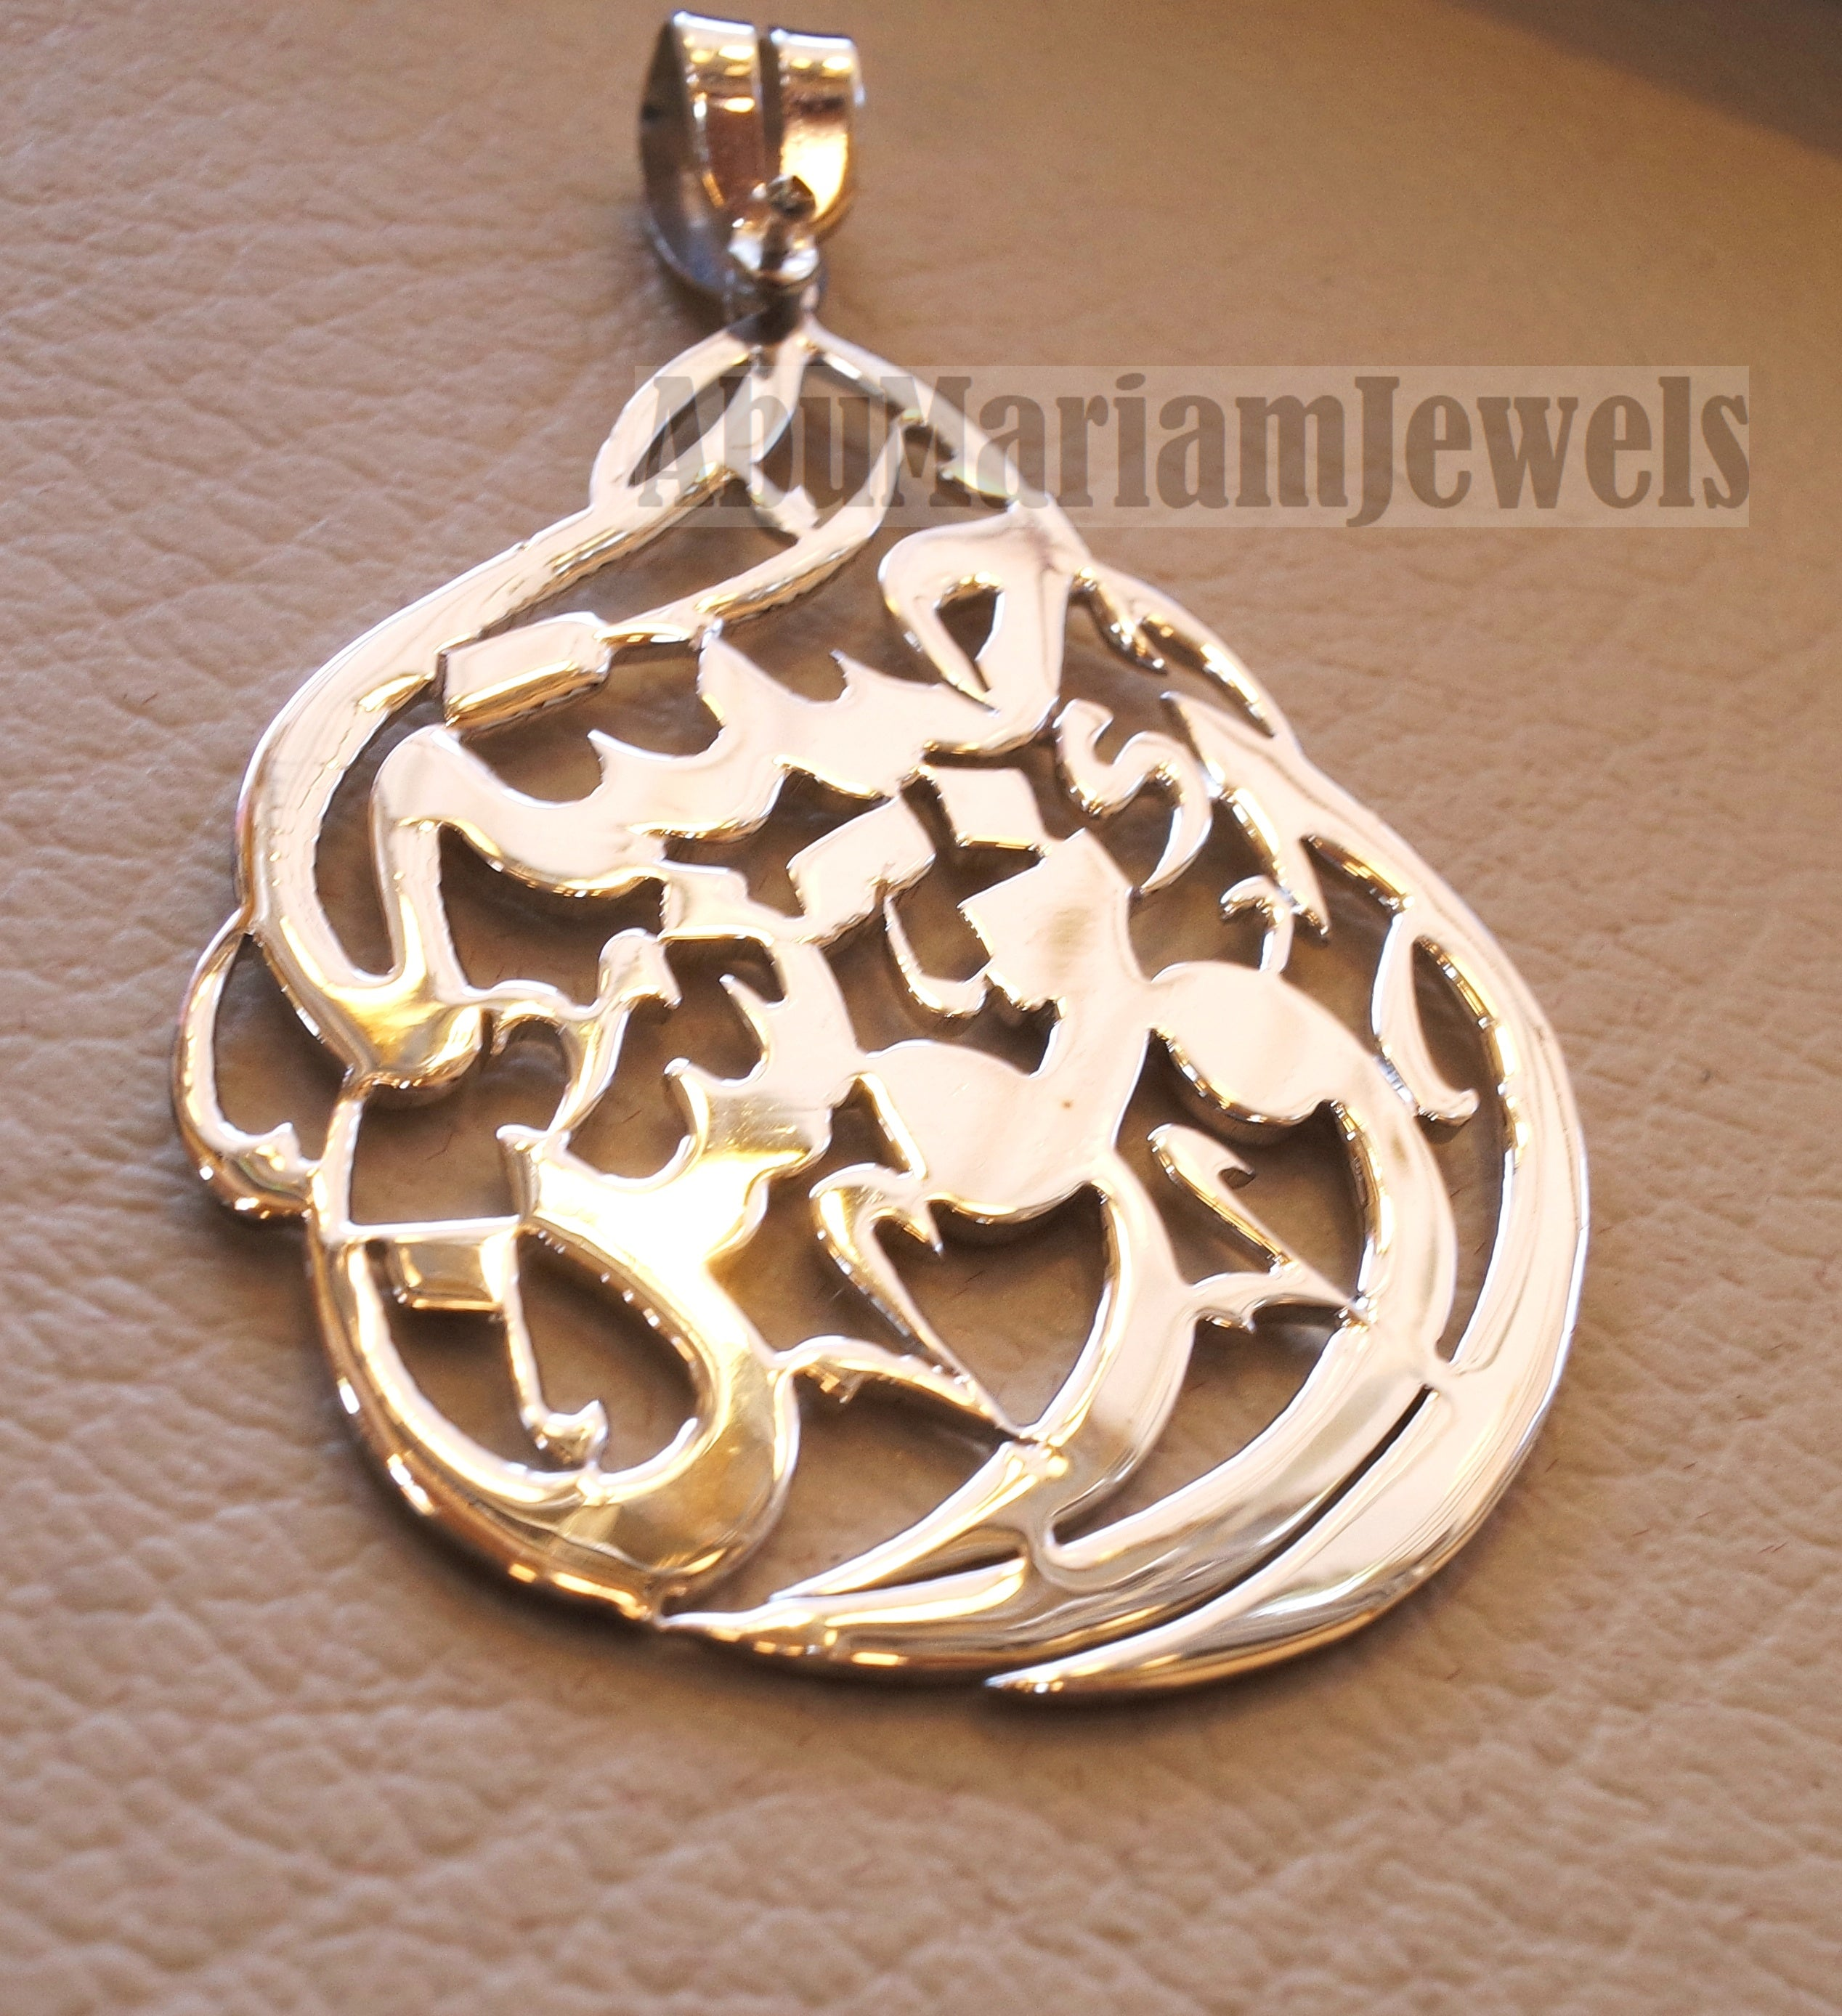 Arabic calligraphy customized name sterling silver 925 high quality polishing pendant with thick chain any two names big size any shape  اسماء عربي